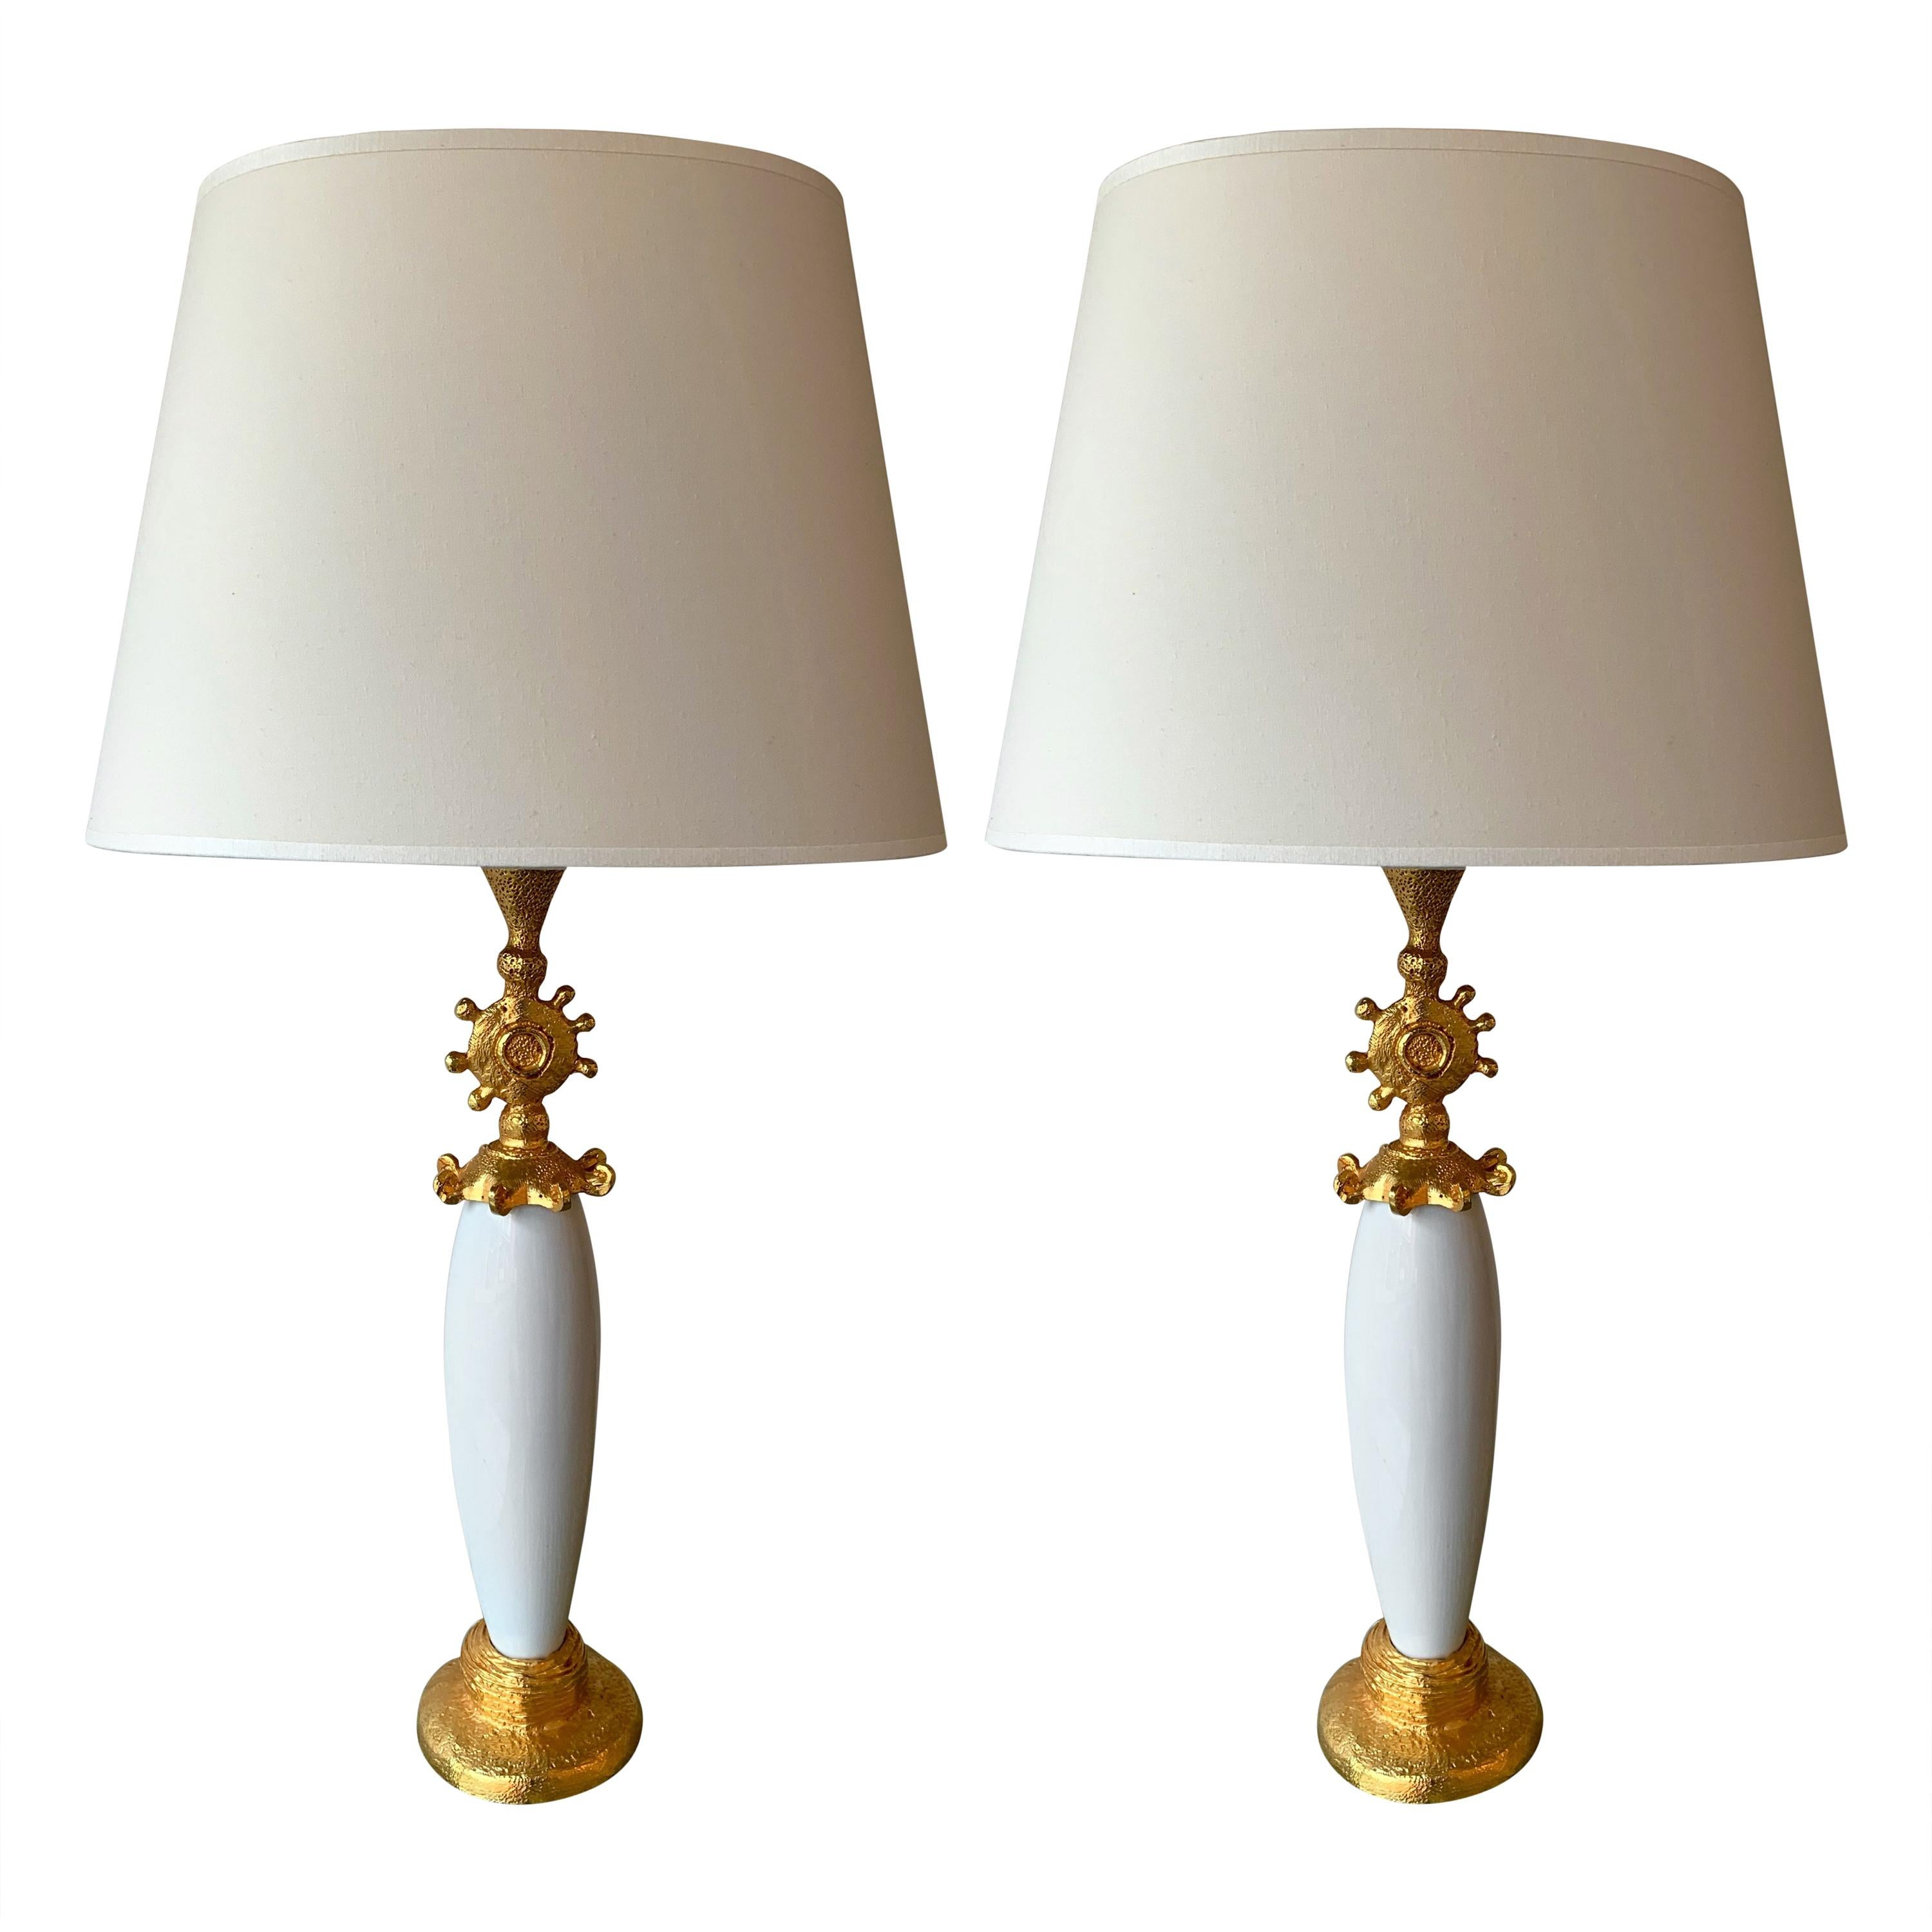 Pair of Sun Lamps Ceramic Gilt Metal by Pierre Casenove for Fondica